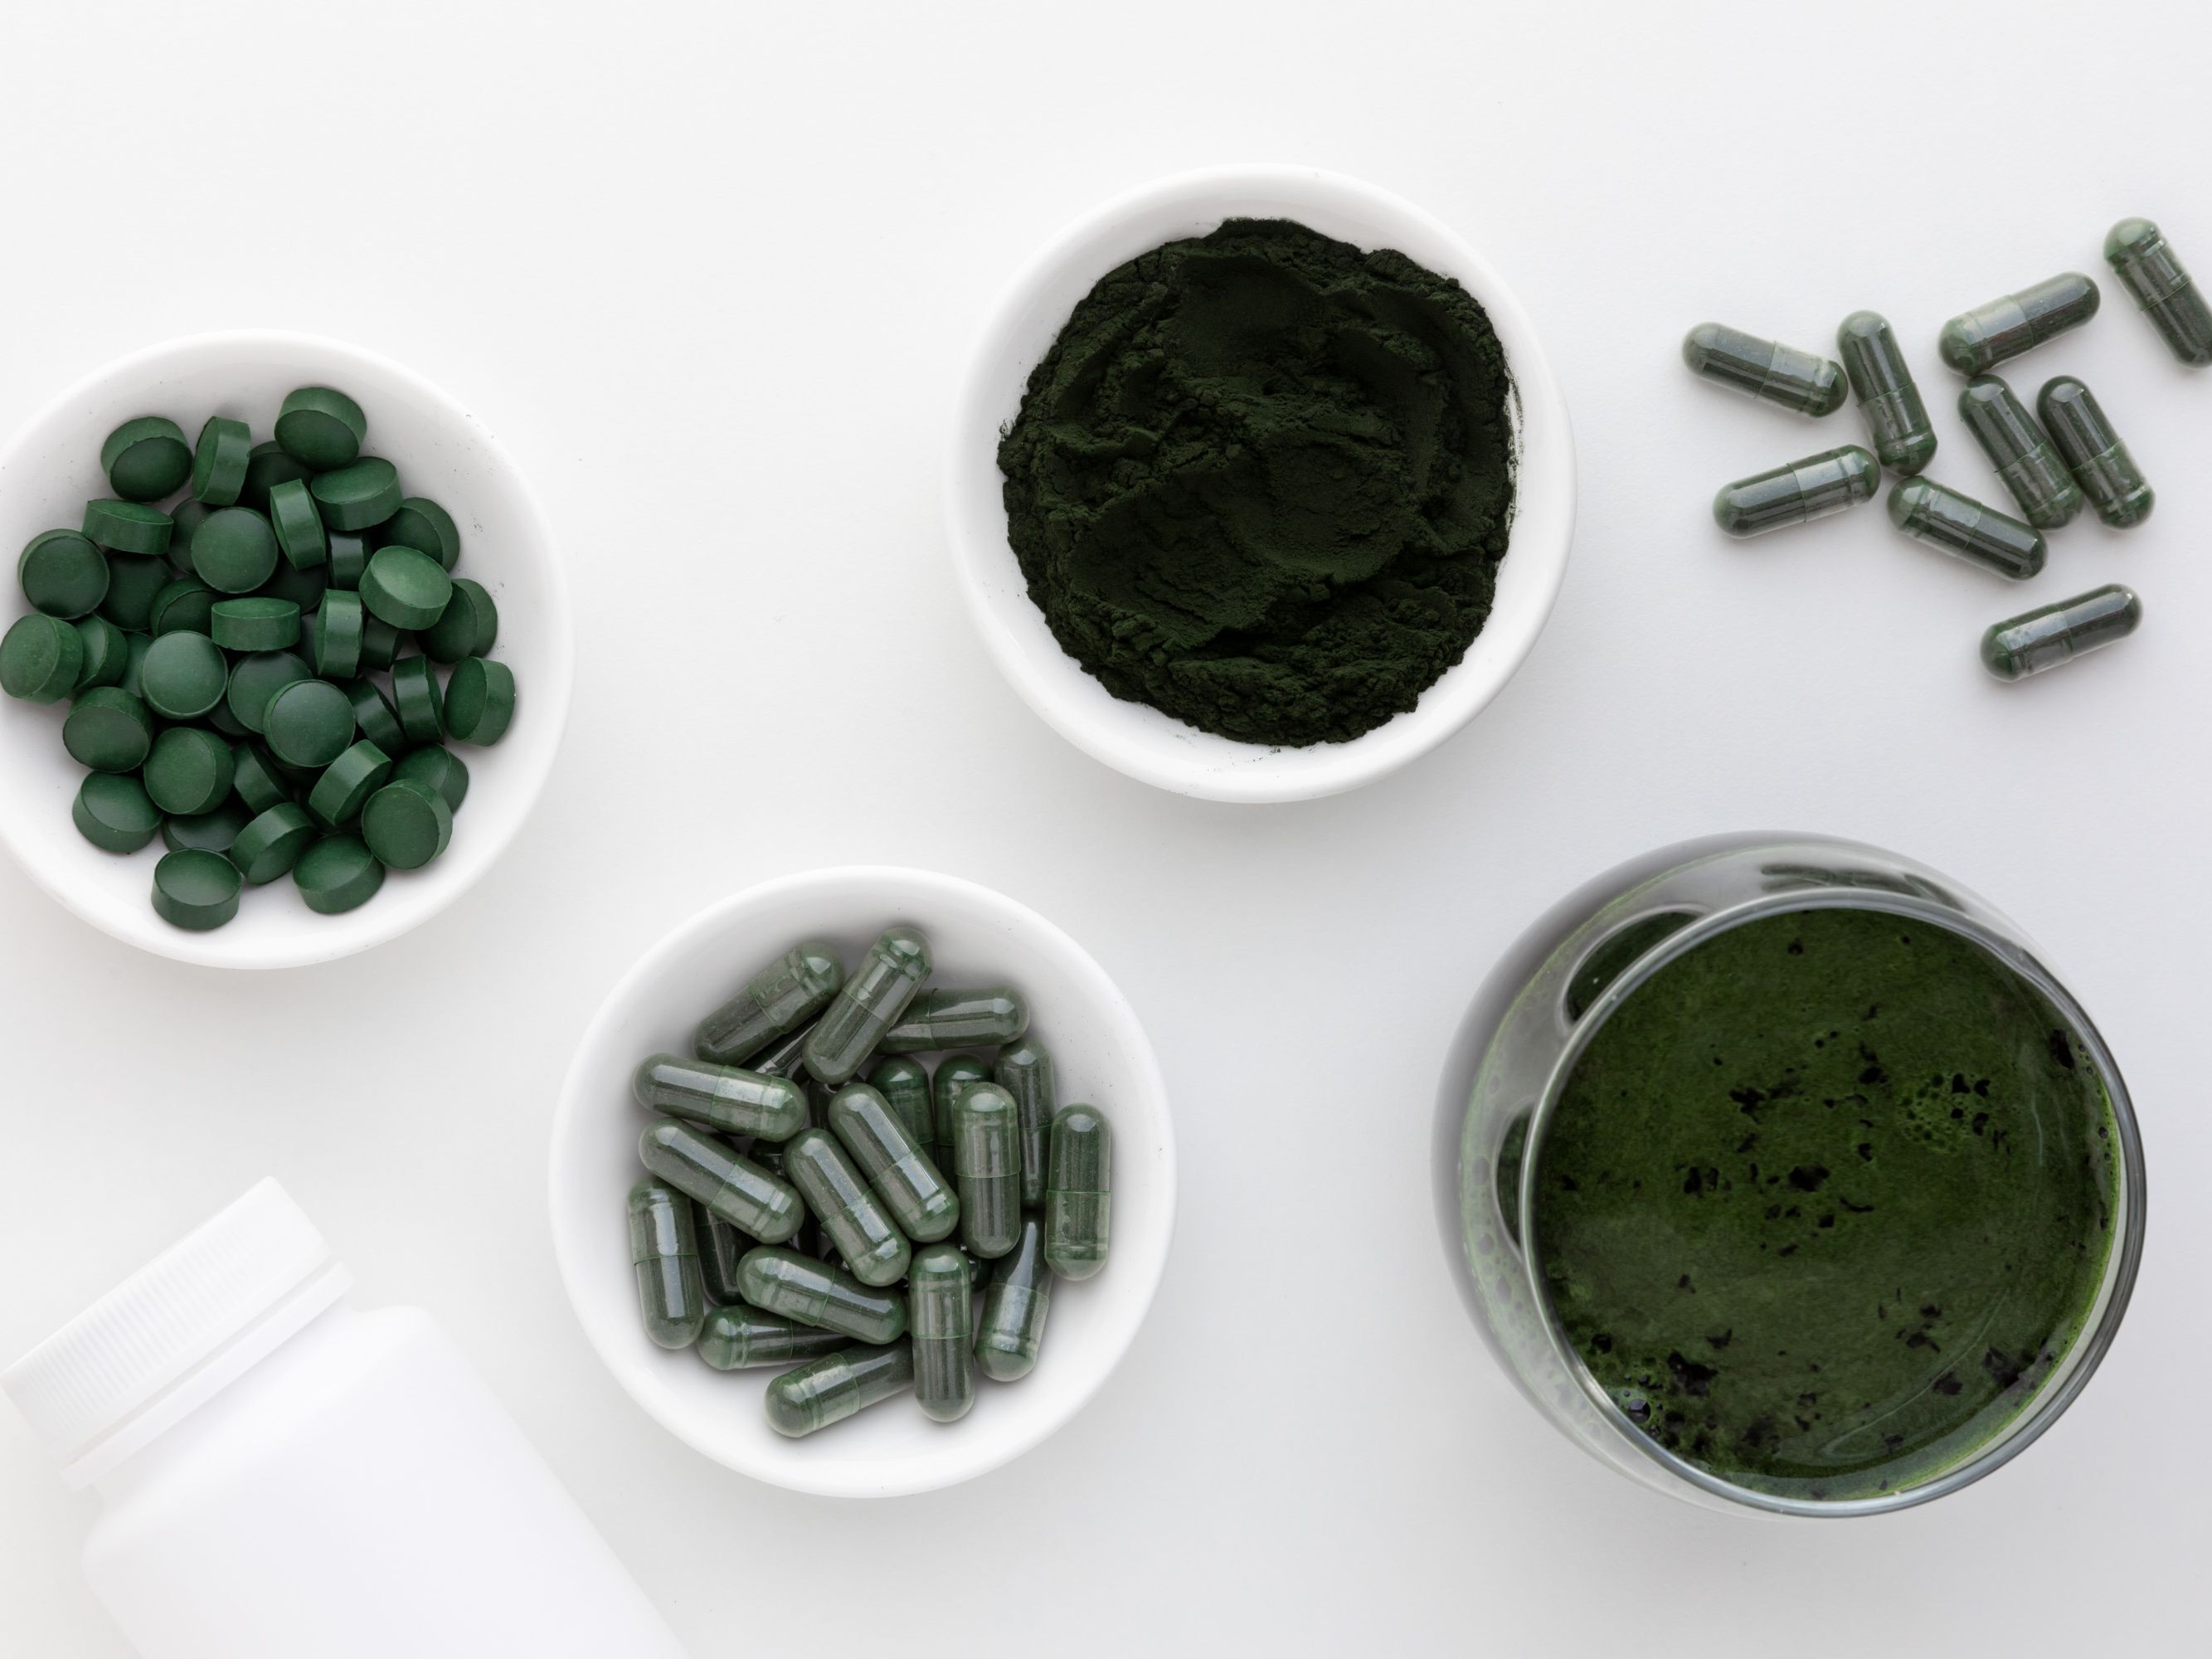 Spirulina: Benefits, Side Effects, Dosage, and Interactions